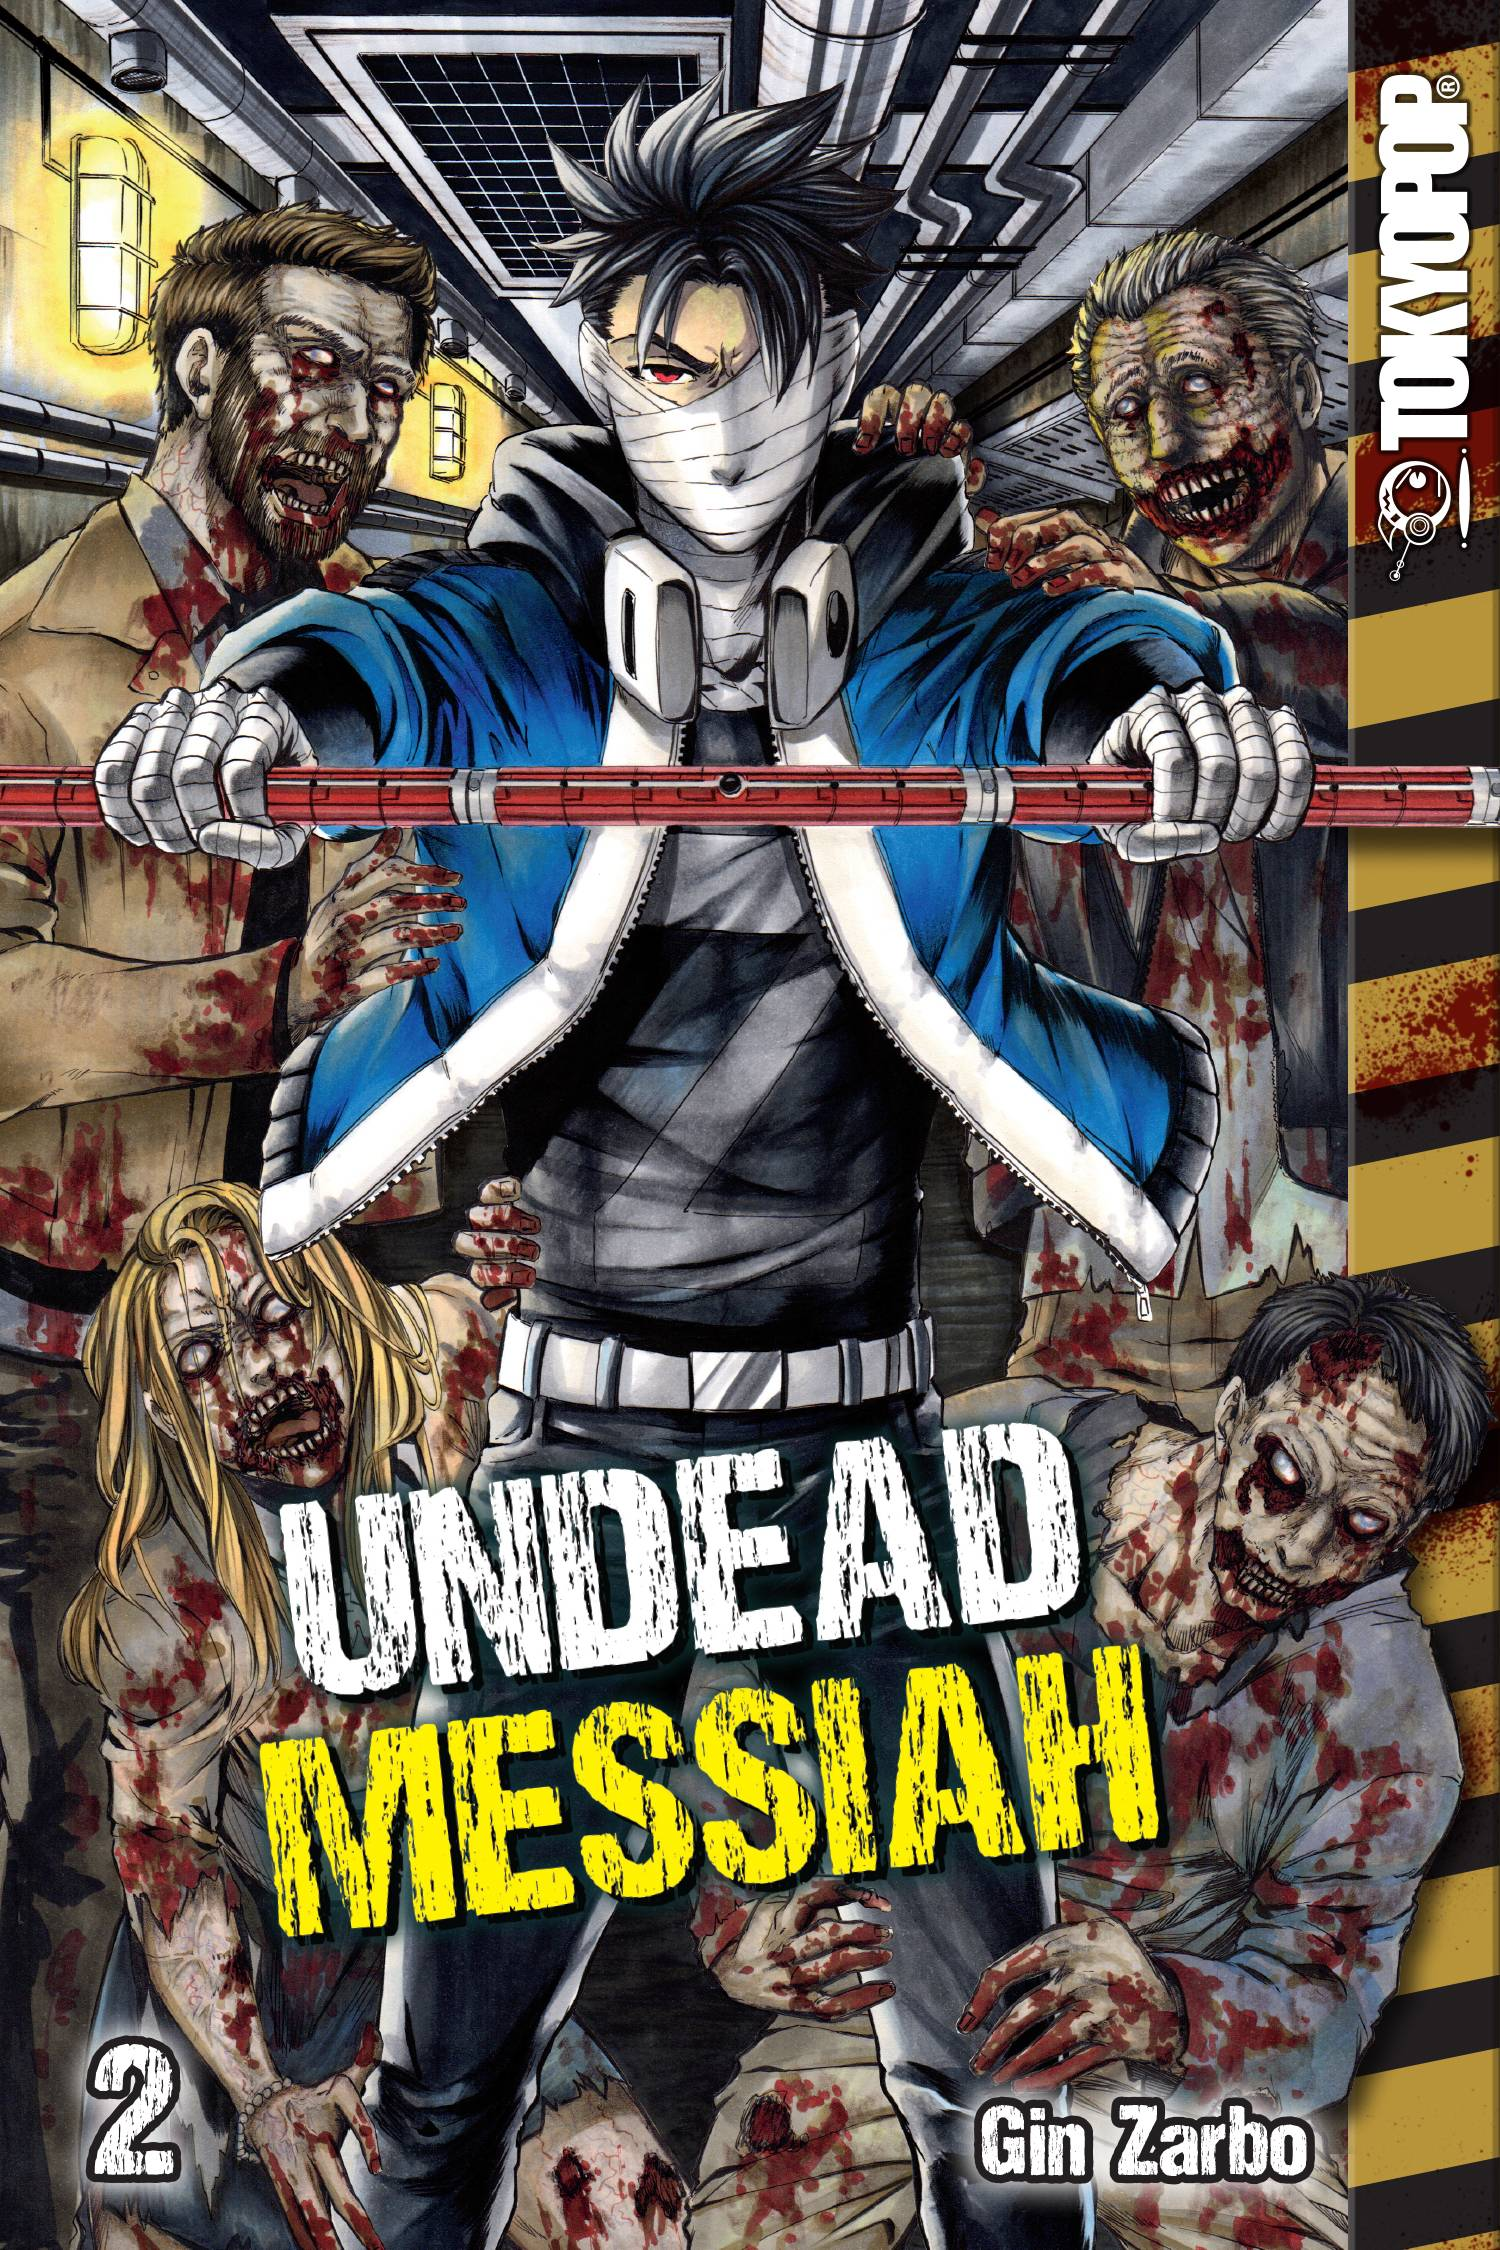 Undead Messiah Manga Gn Vol 02 (STL091947)